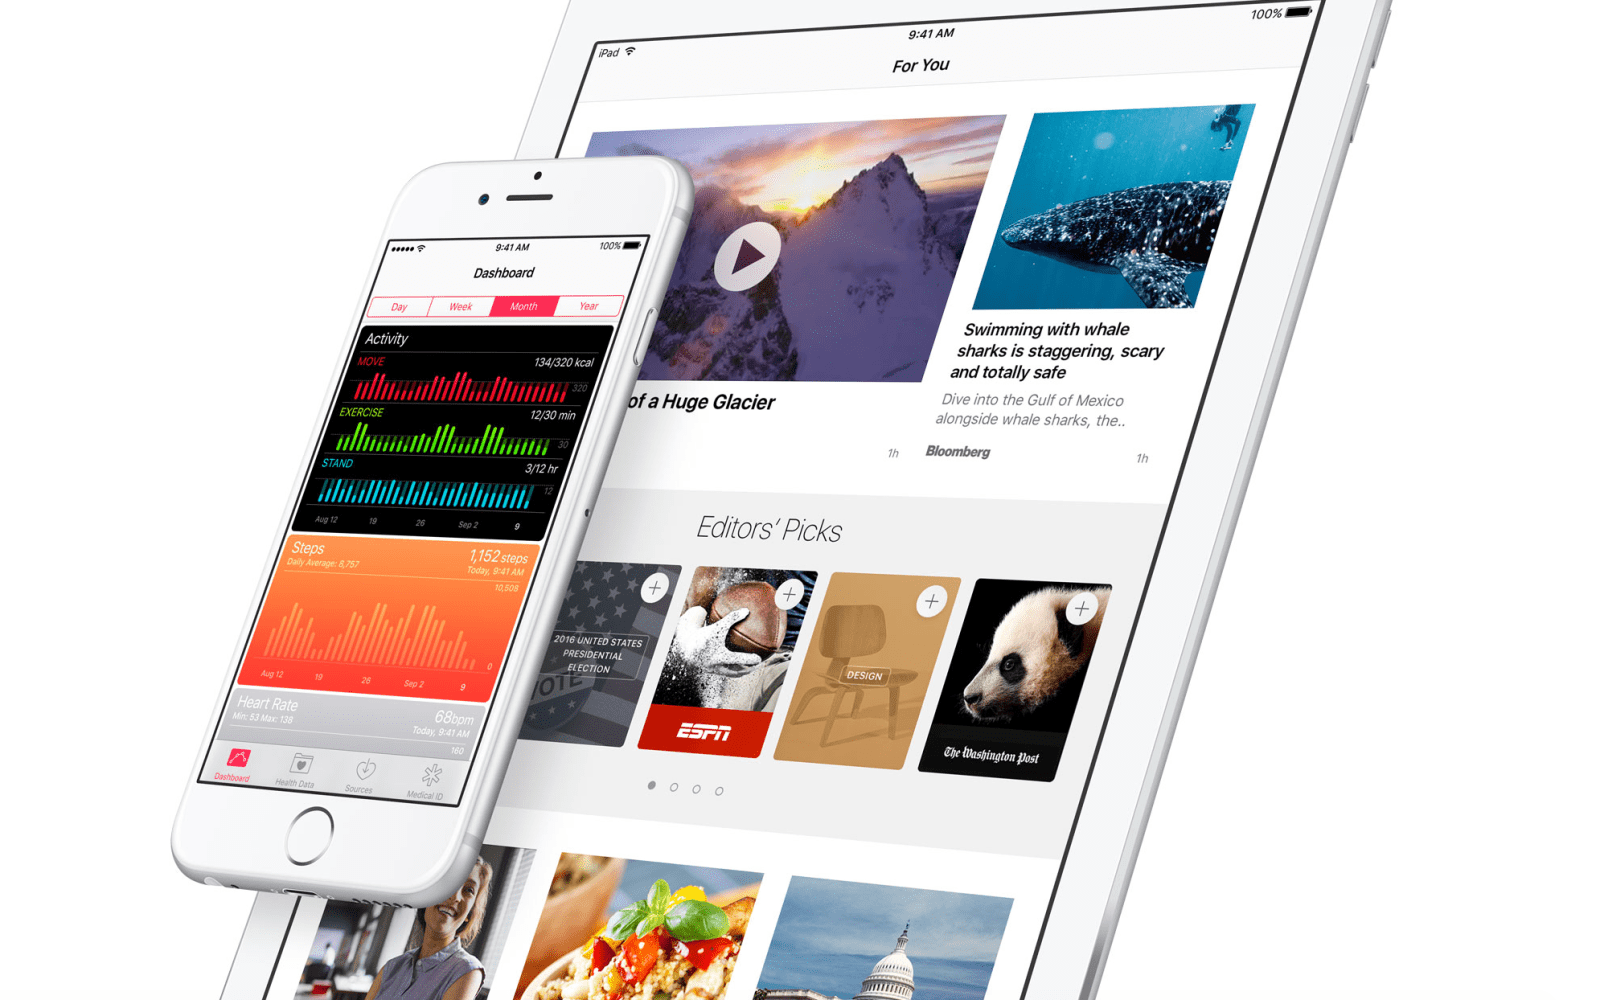 Apple releases iOS 9.3 for iPhone, iPad and iPod touch featuring Night Shift, Touch ID Notes and more — here are all the new features